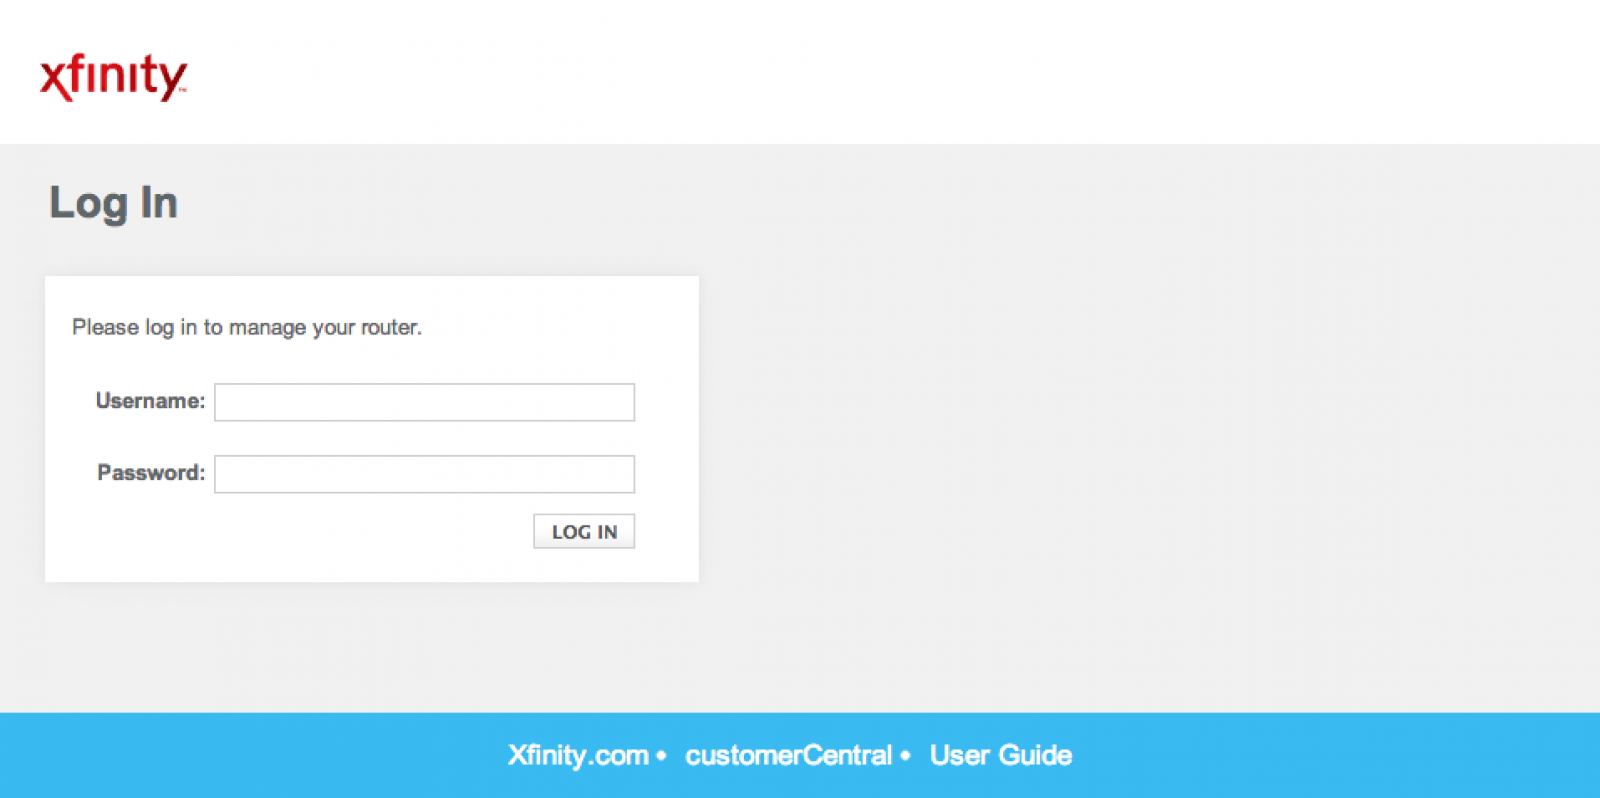 Xfinity Router Login How To Log In To A Comcast Xfinity Router Comcast Xfinity Router Comcast